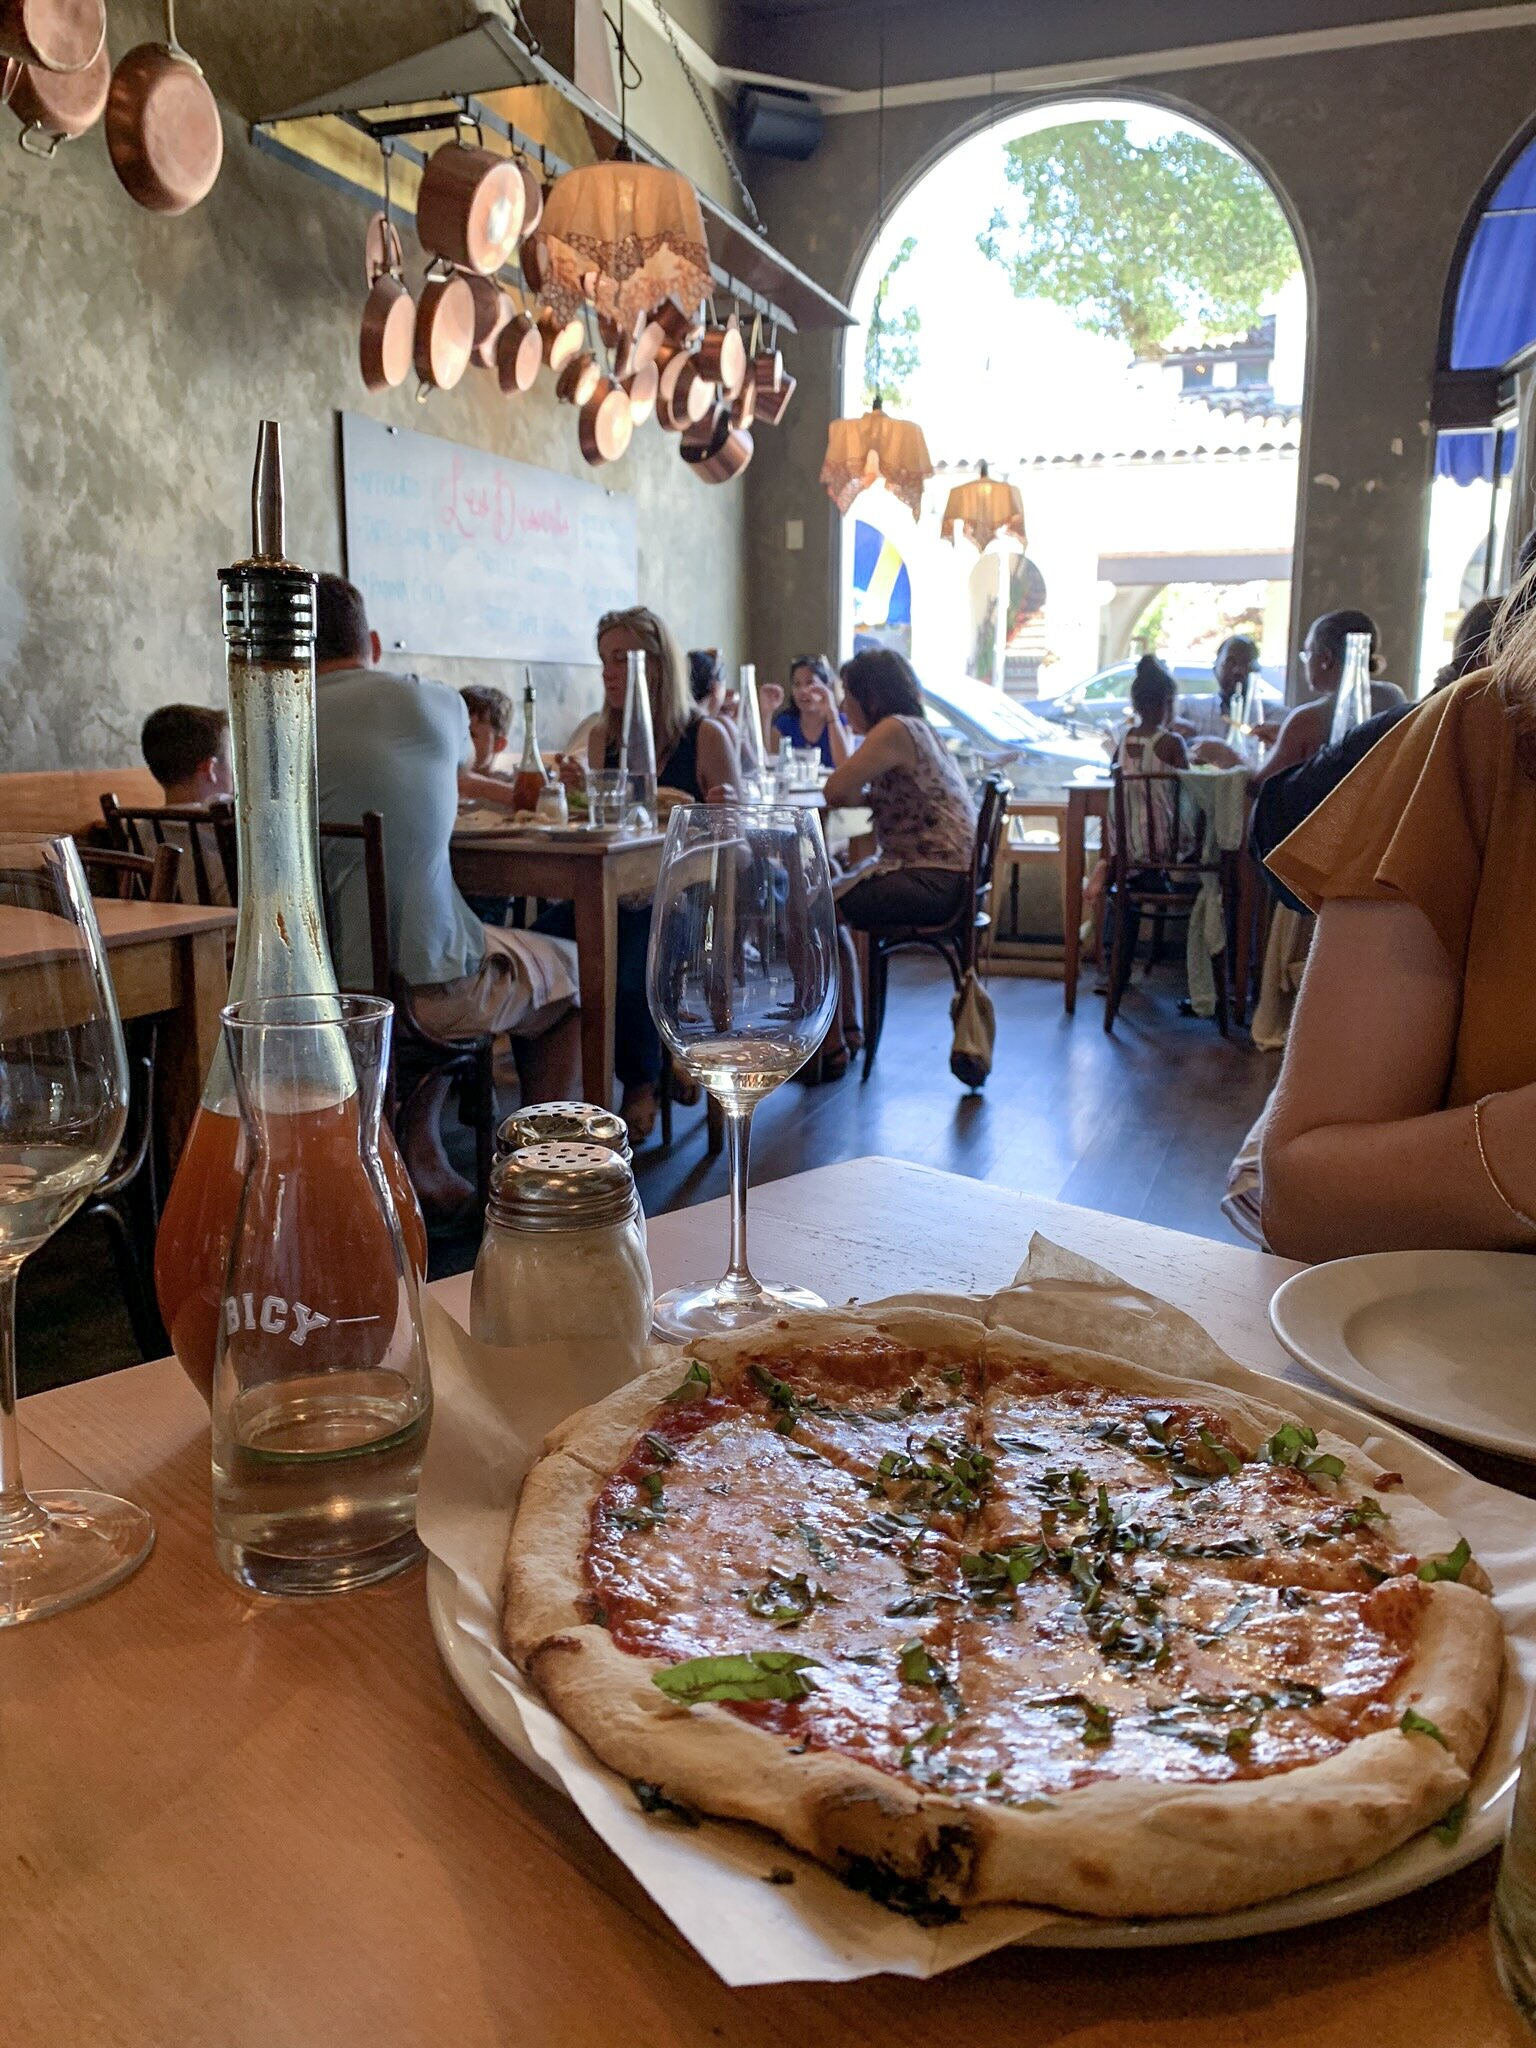 Margherita pizza and rose from La Bicyclette in Carmel-by-the-Sea, California.